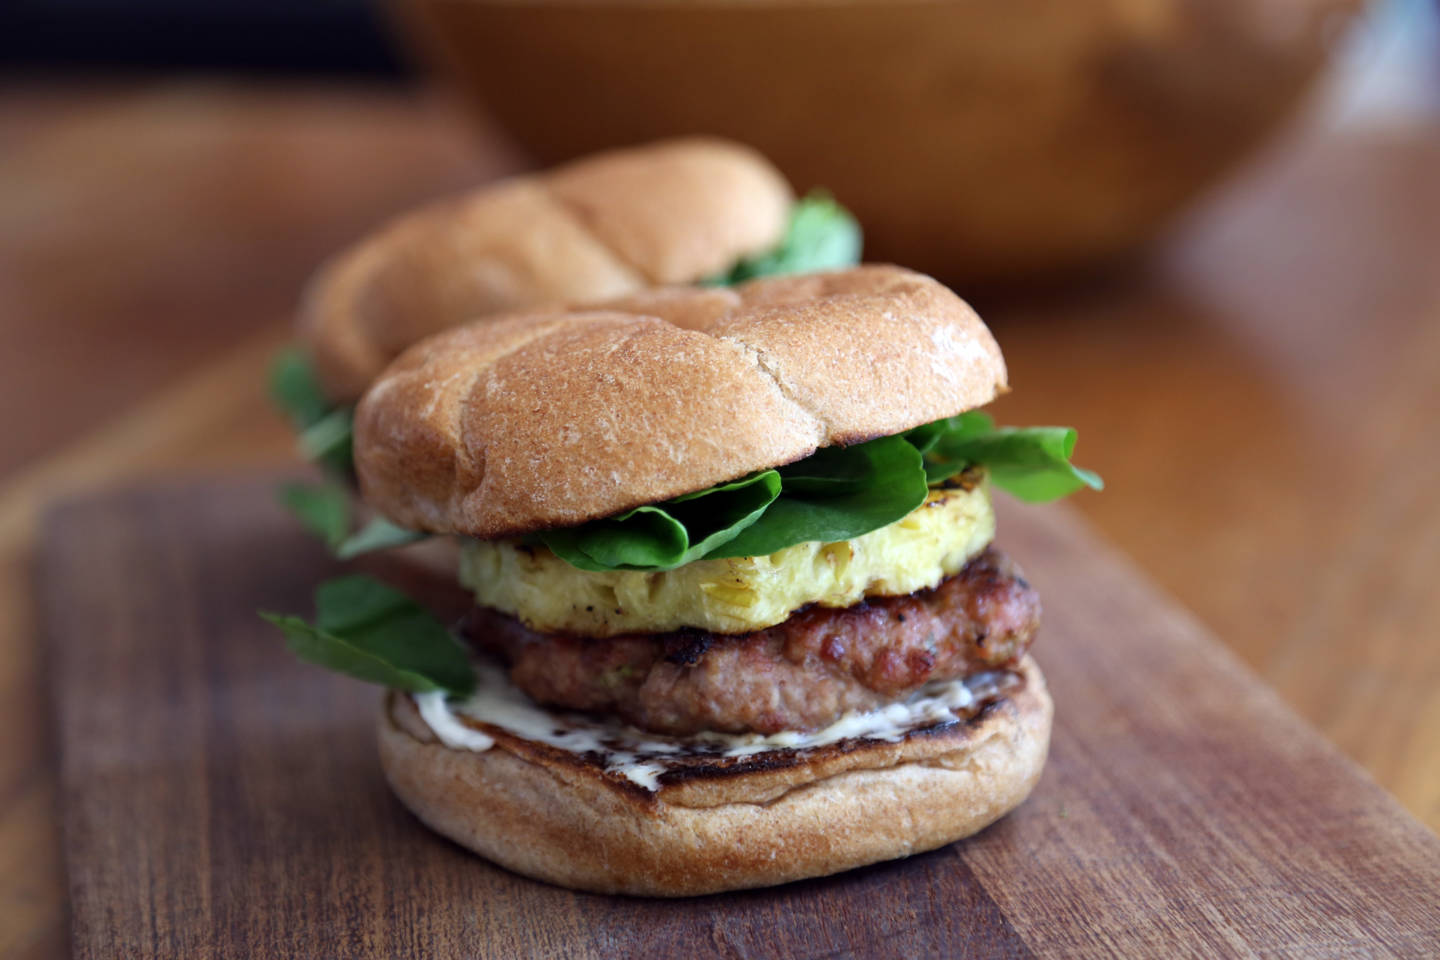 Sesame-Ginger Pork Burgers with Grilled Pineapple Wendy Goodfriend